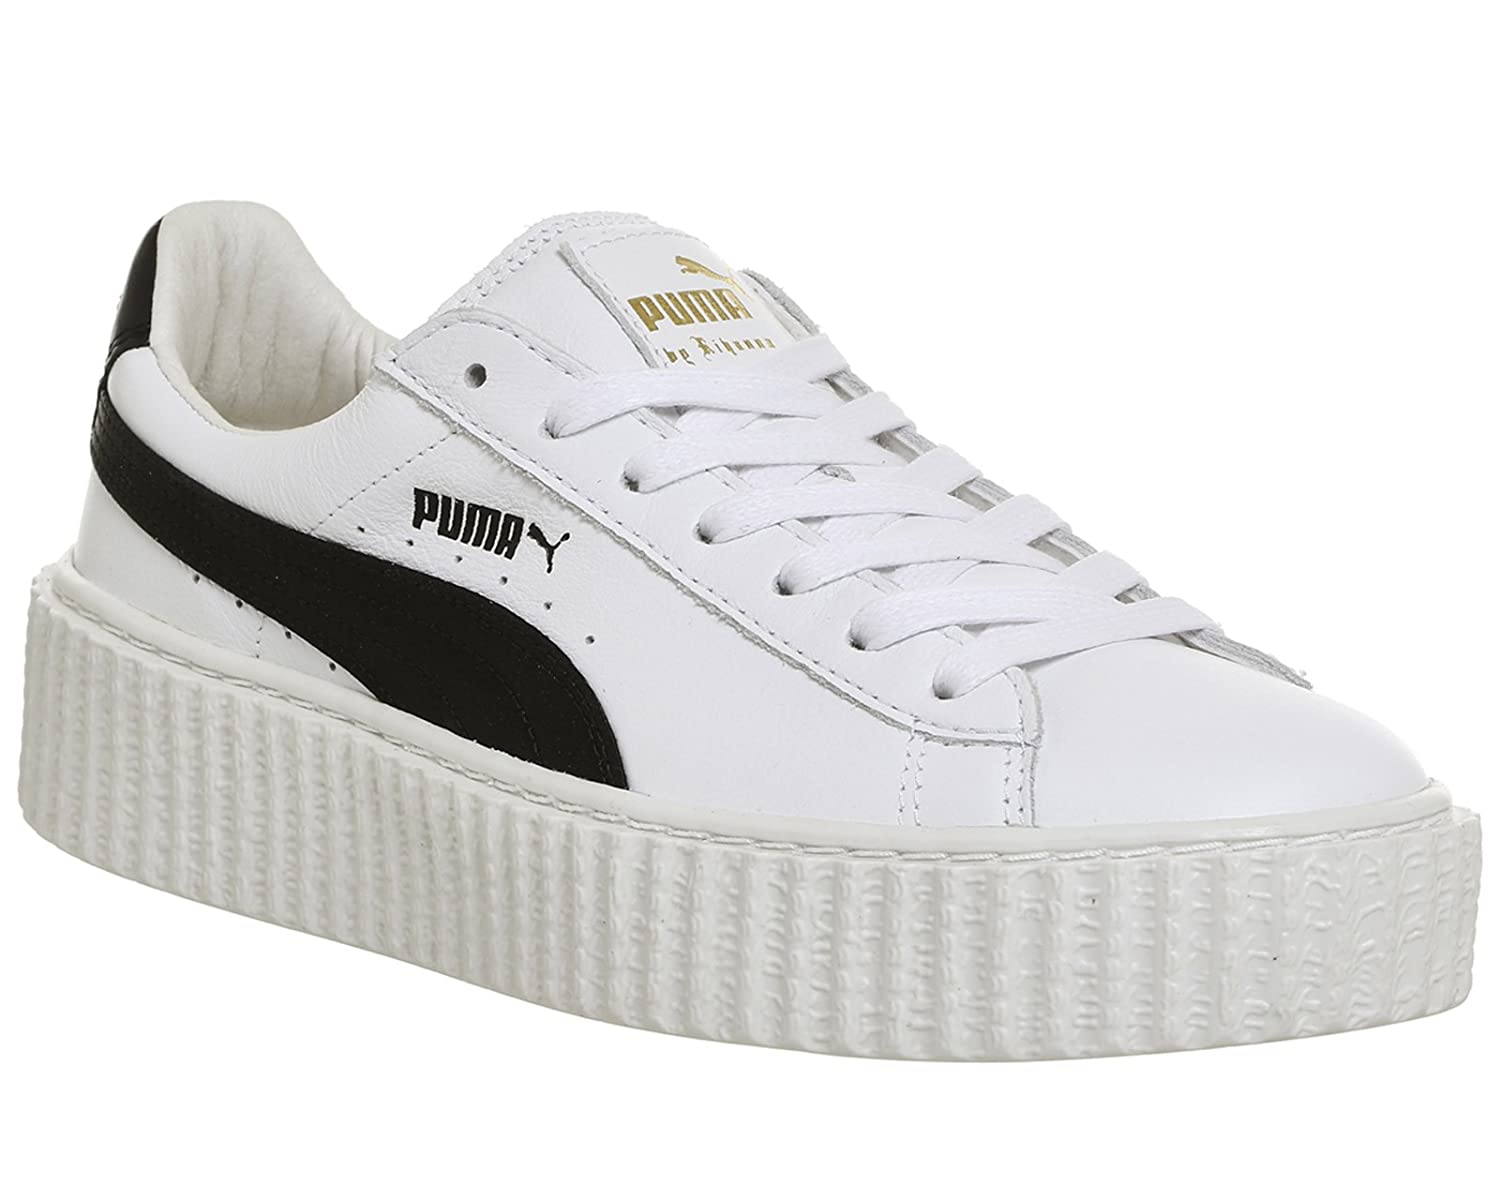 PUMA Women's x Fenty Cracked Creeper Sneakers B06Y3WB443 5.5 W US|Puma White-black-puma White